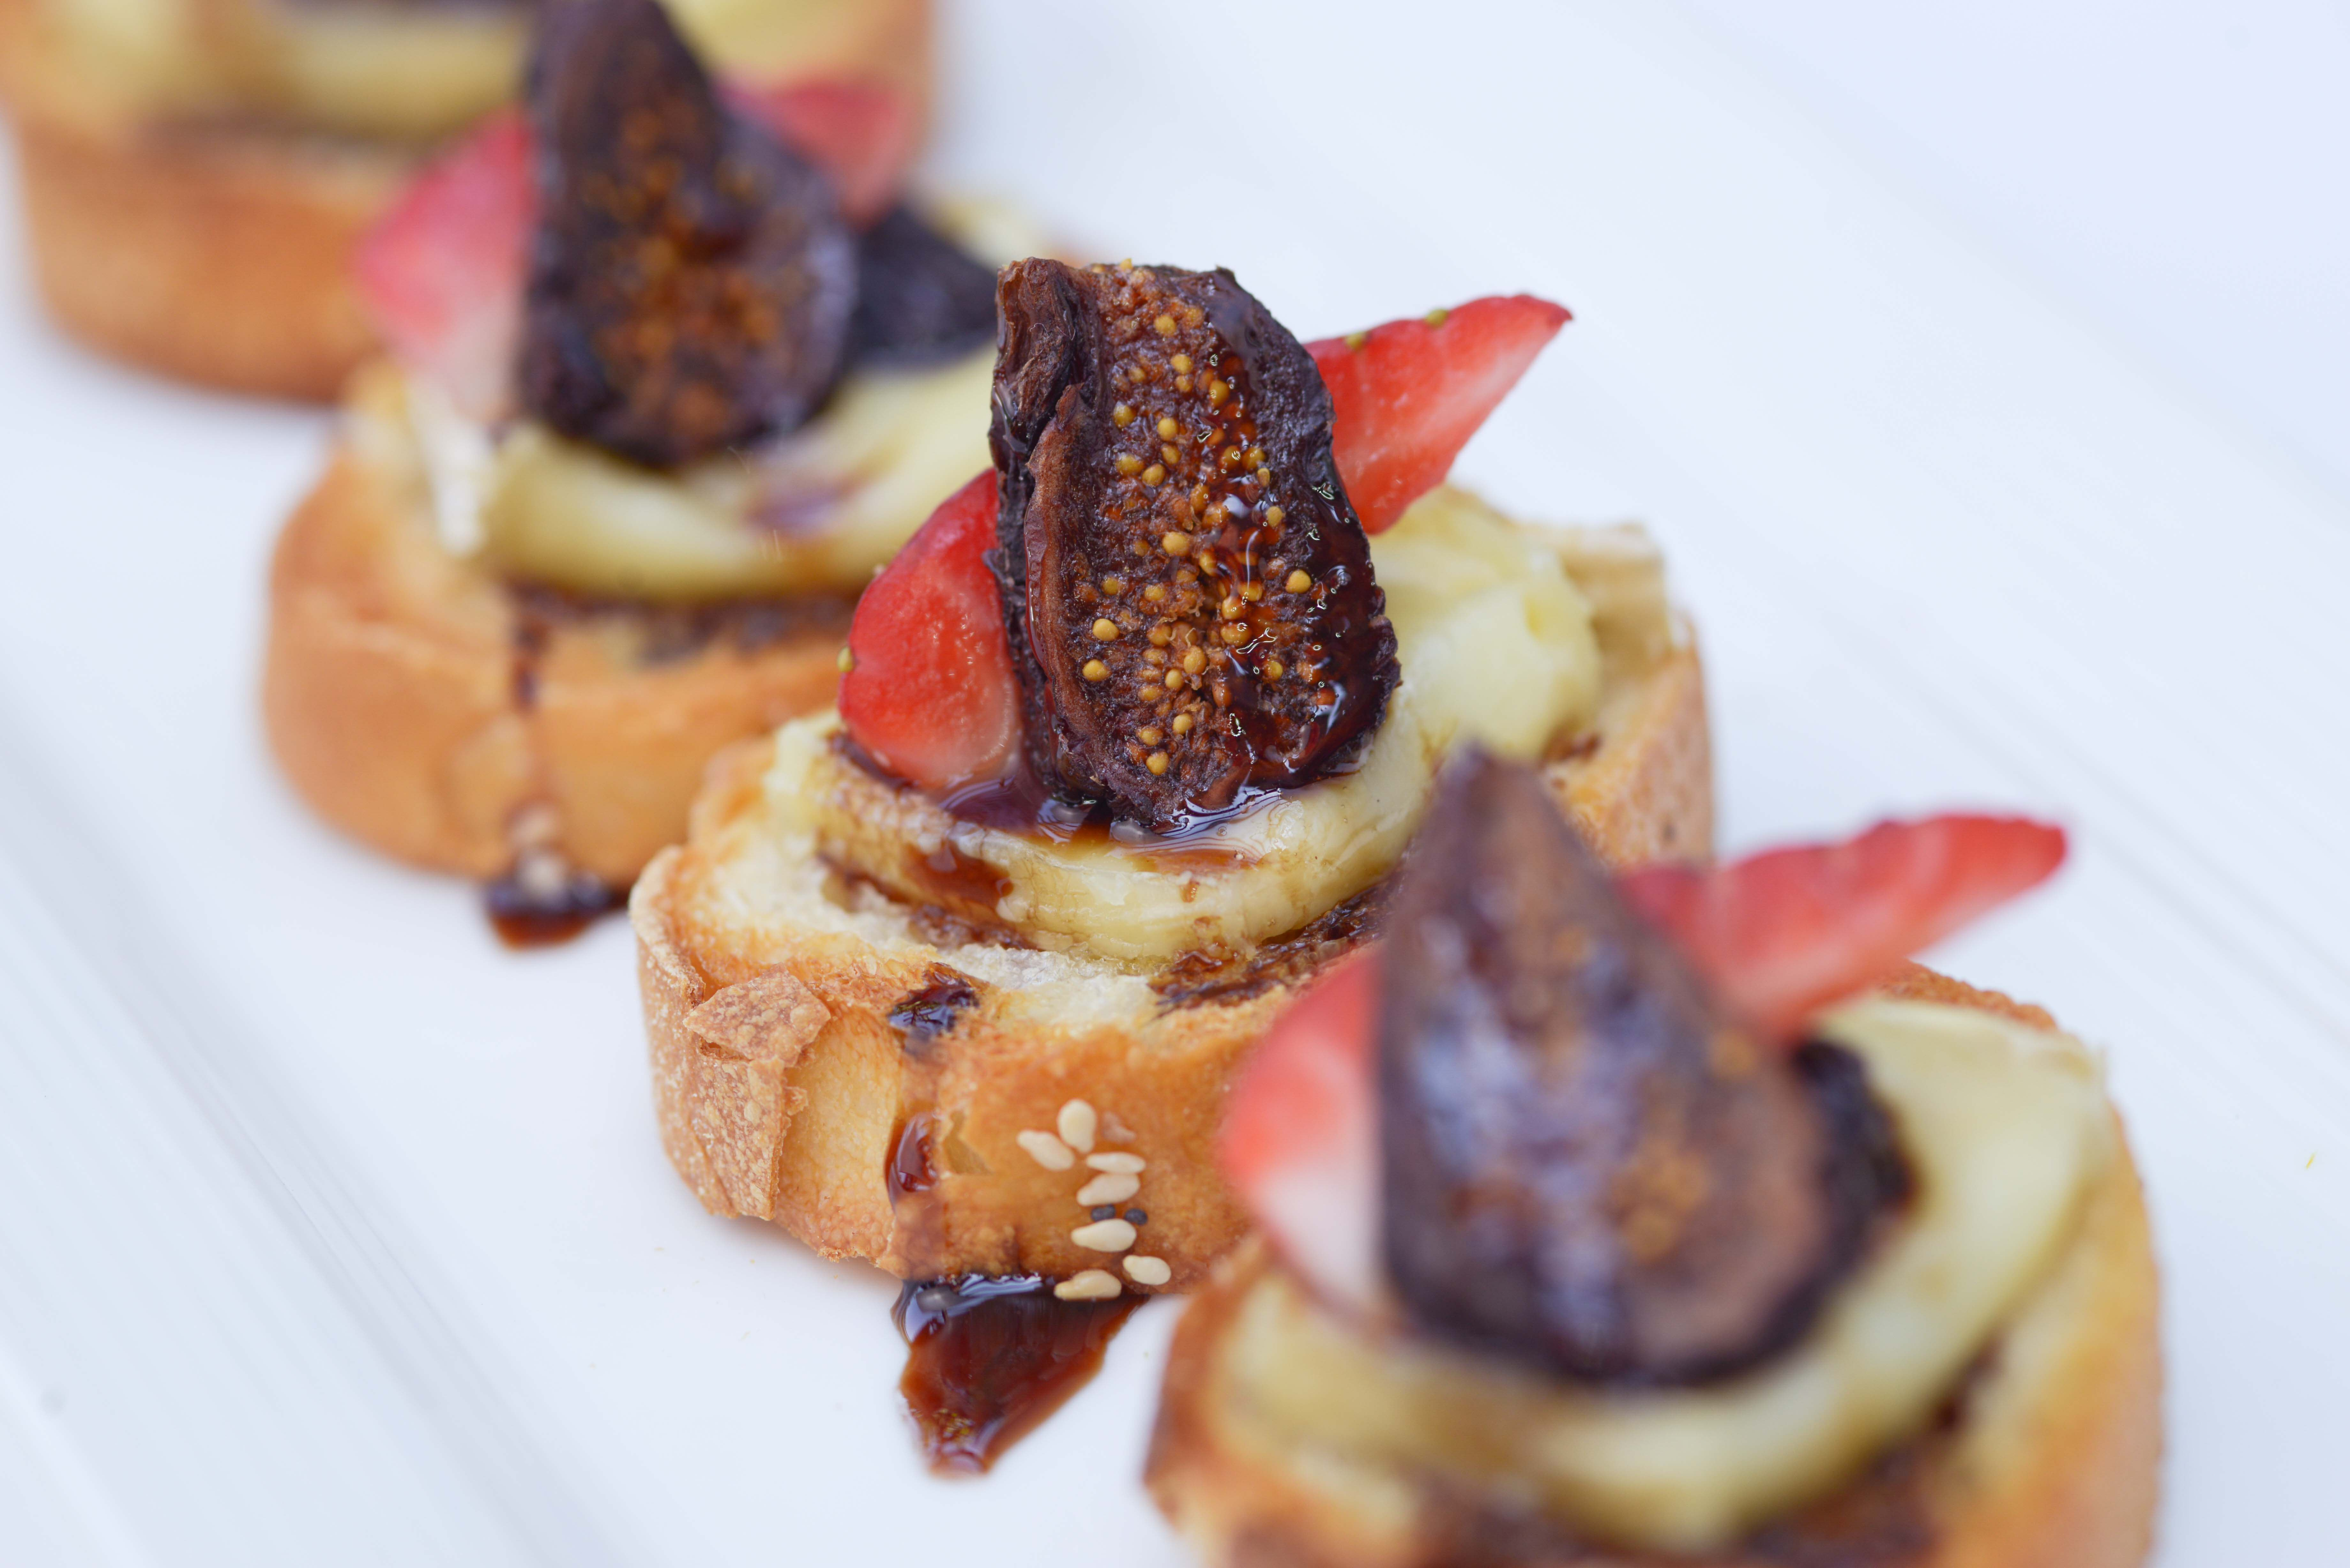 Row of pastry desserts flled with cream and topped with halved strawberries and figs